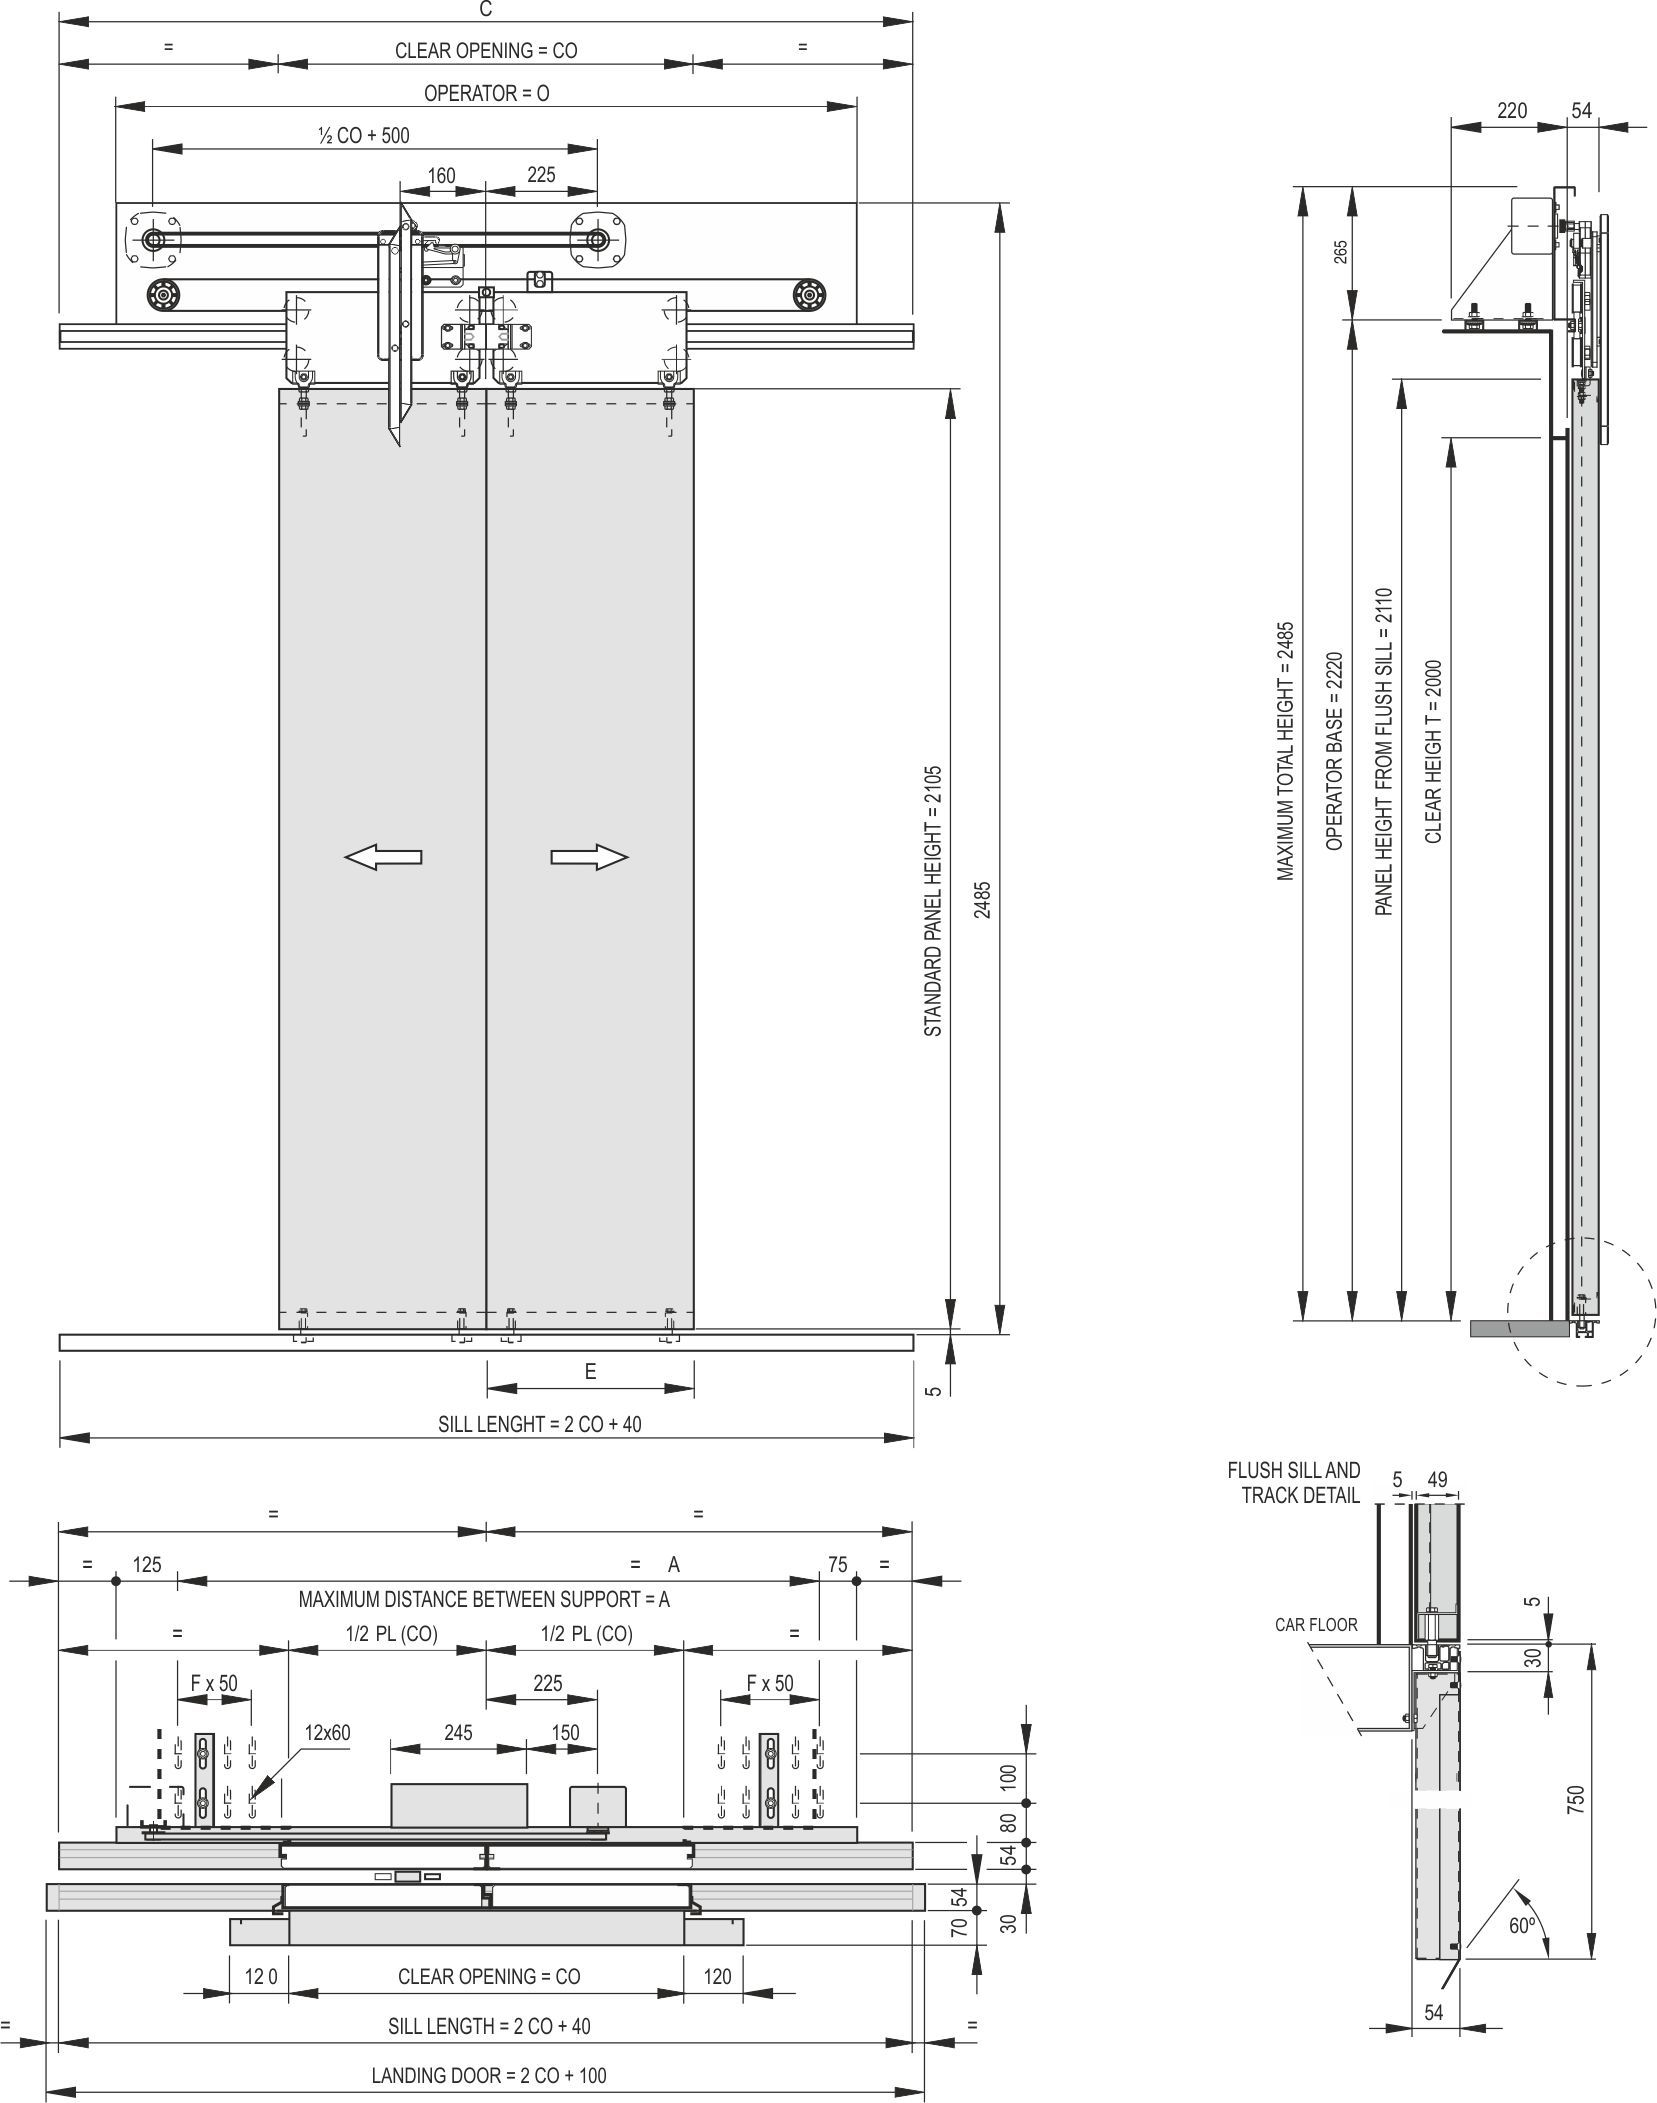 2 Panel Centre Parting Door For Elevators Index Systems Car Schematic Model